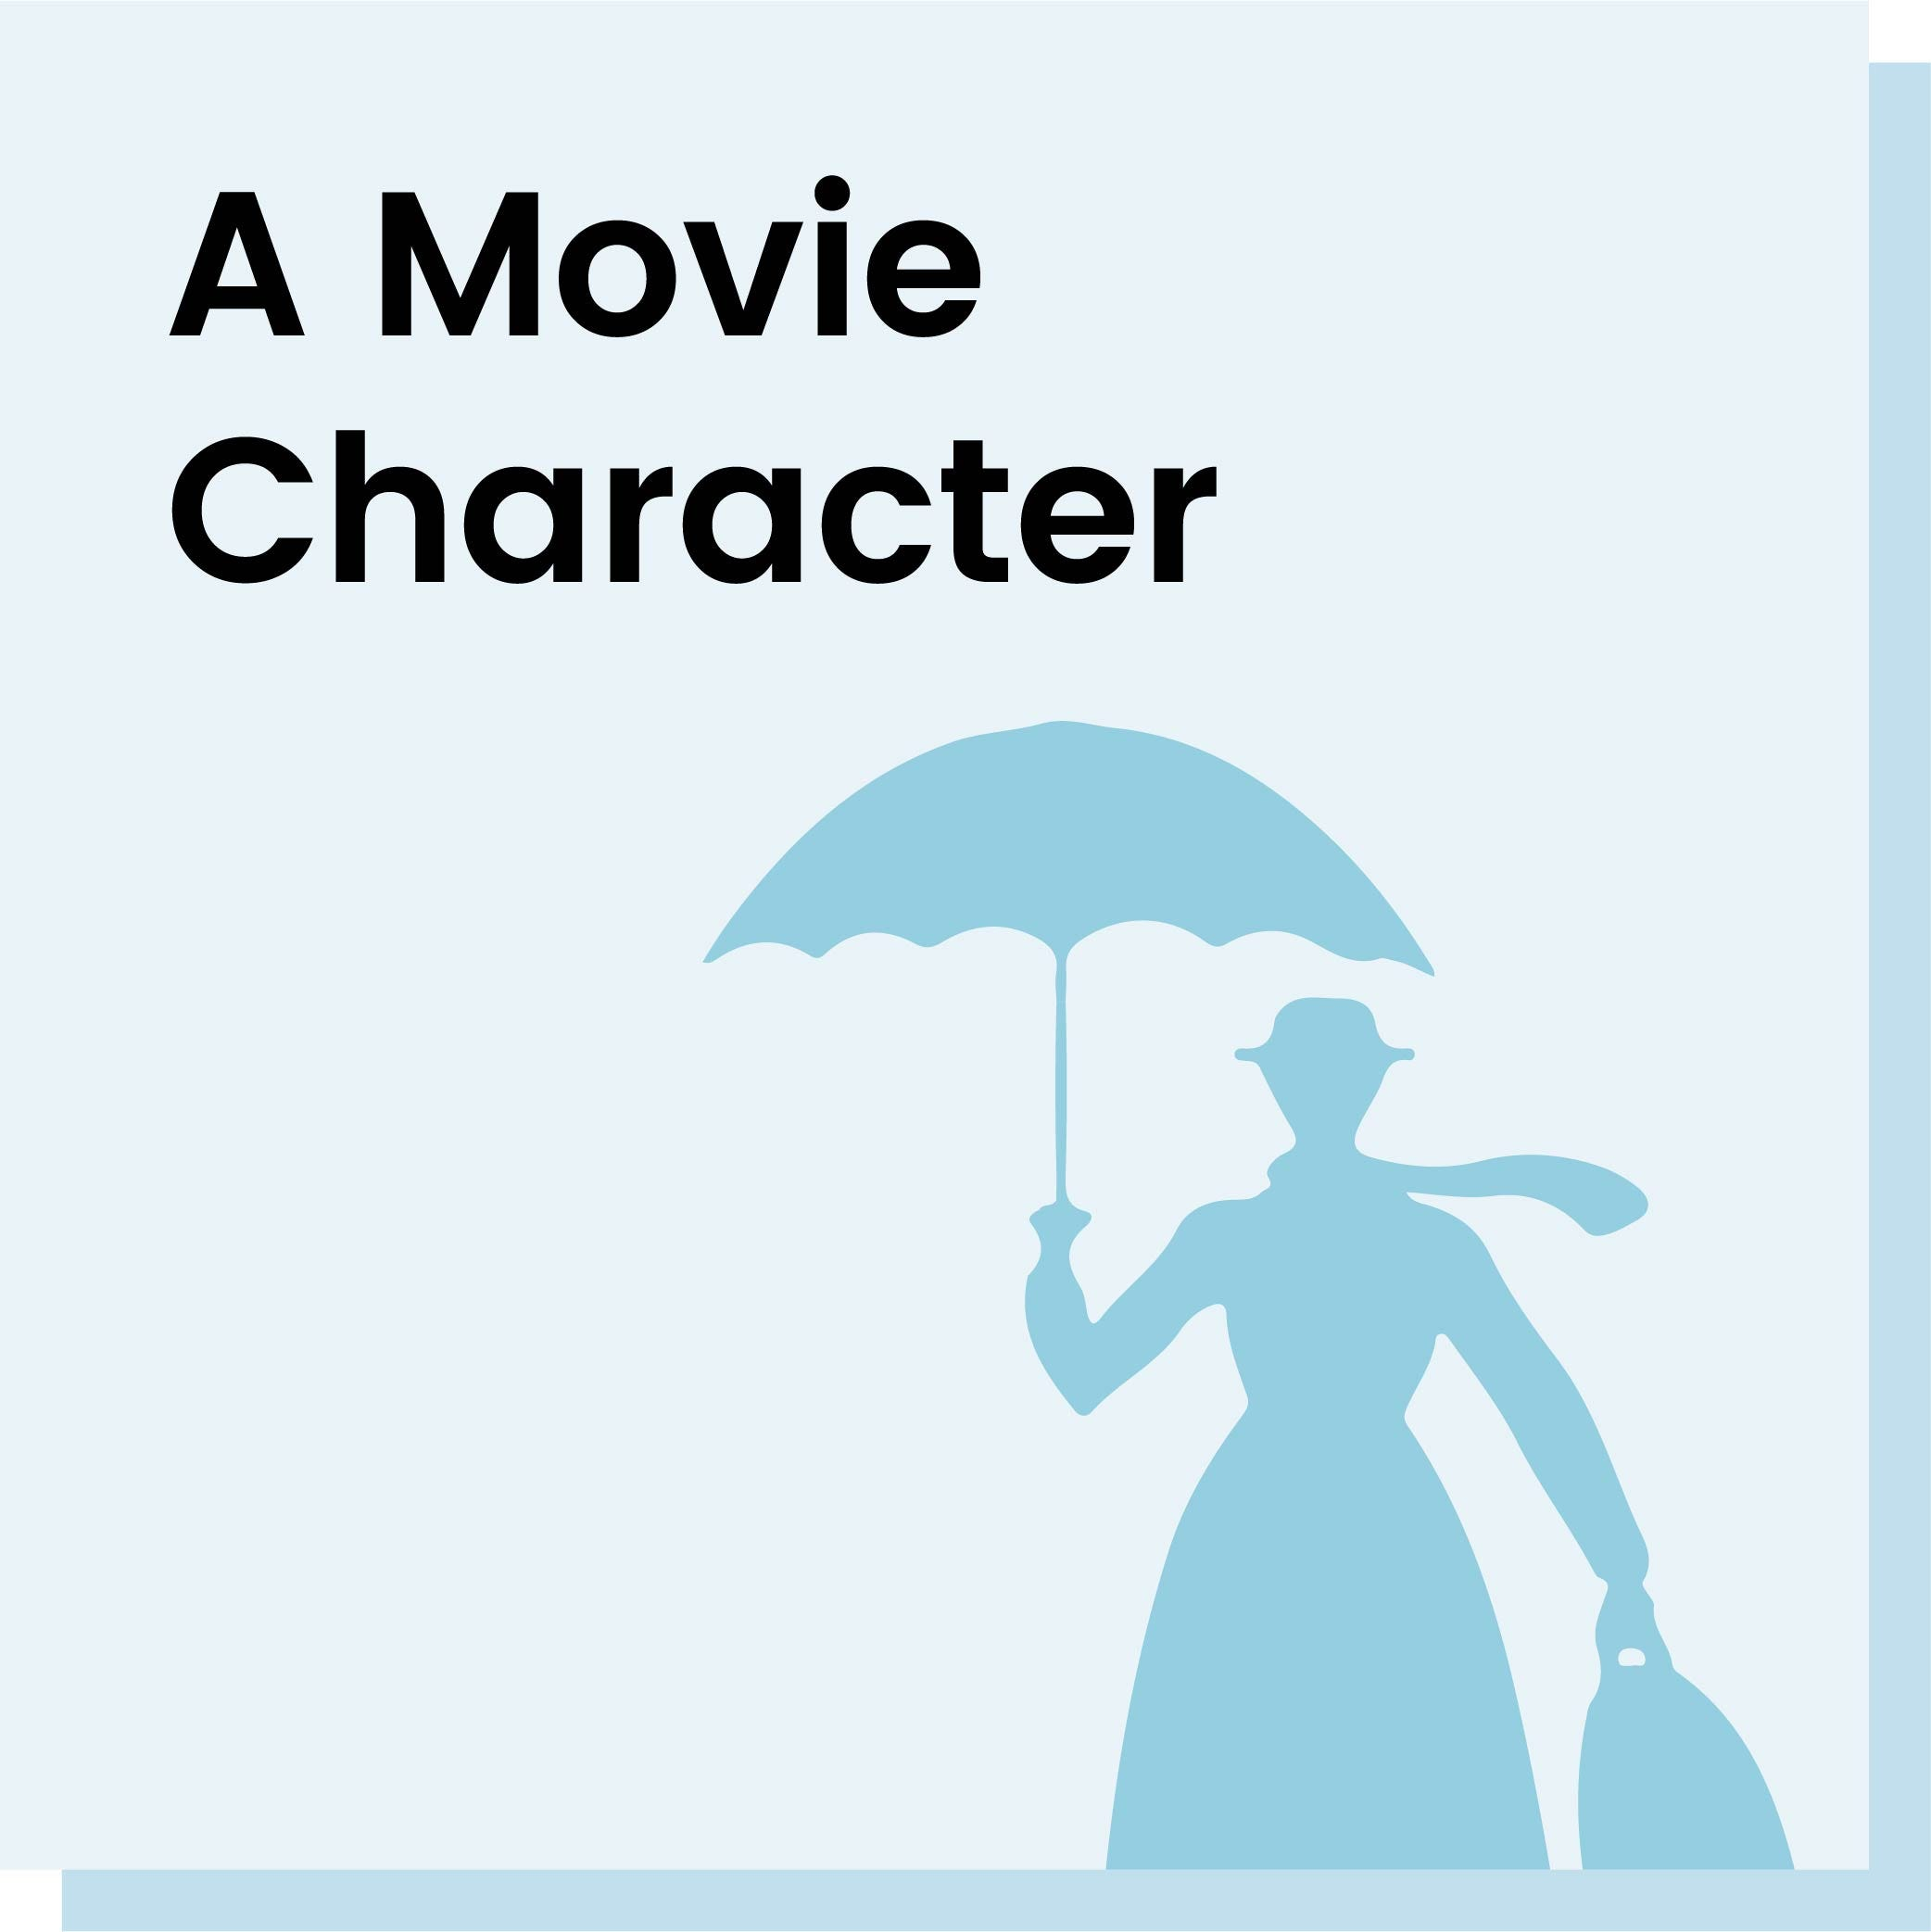 A Movie Character